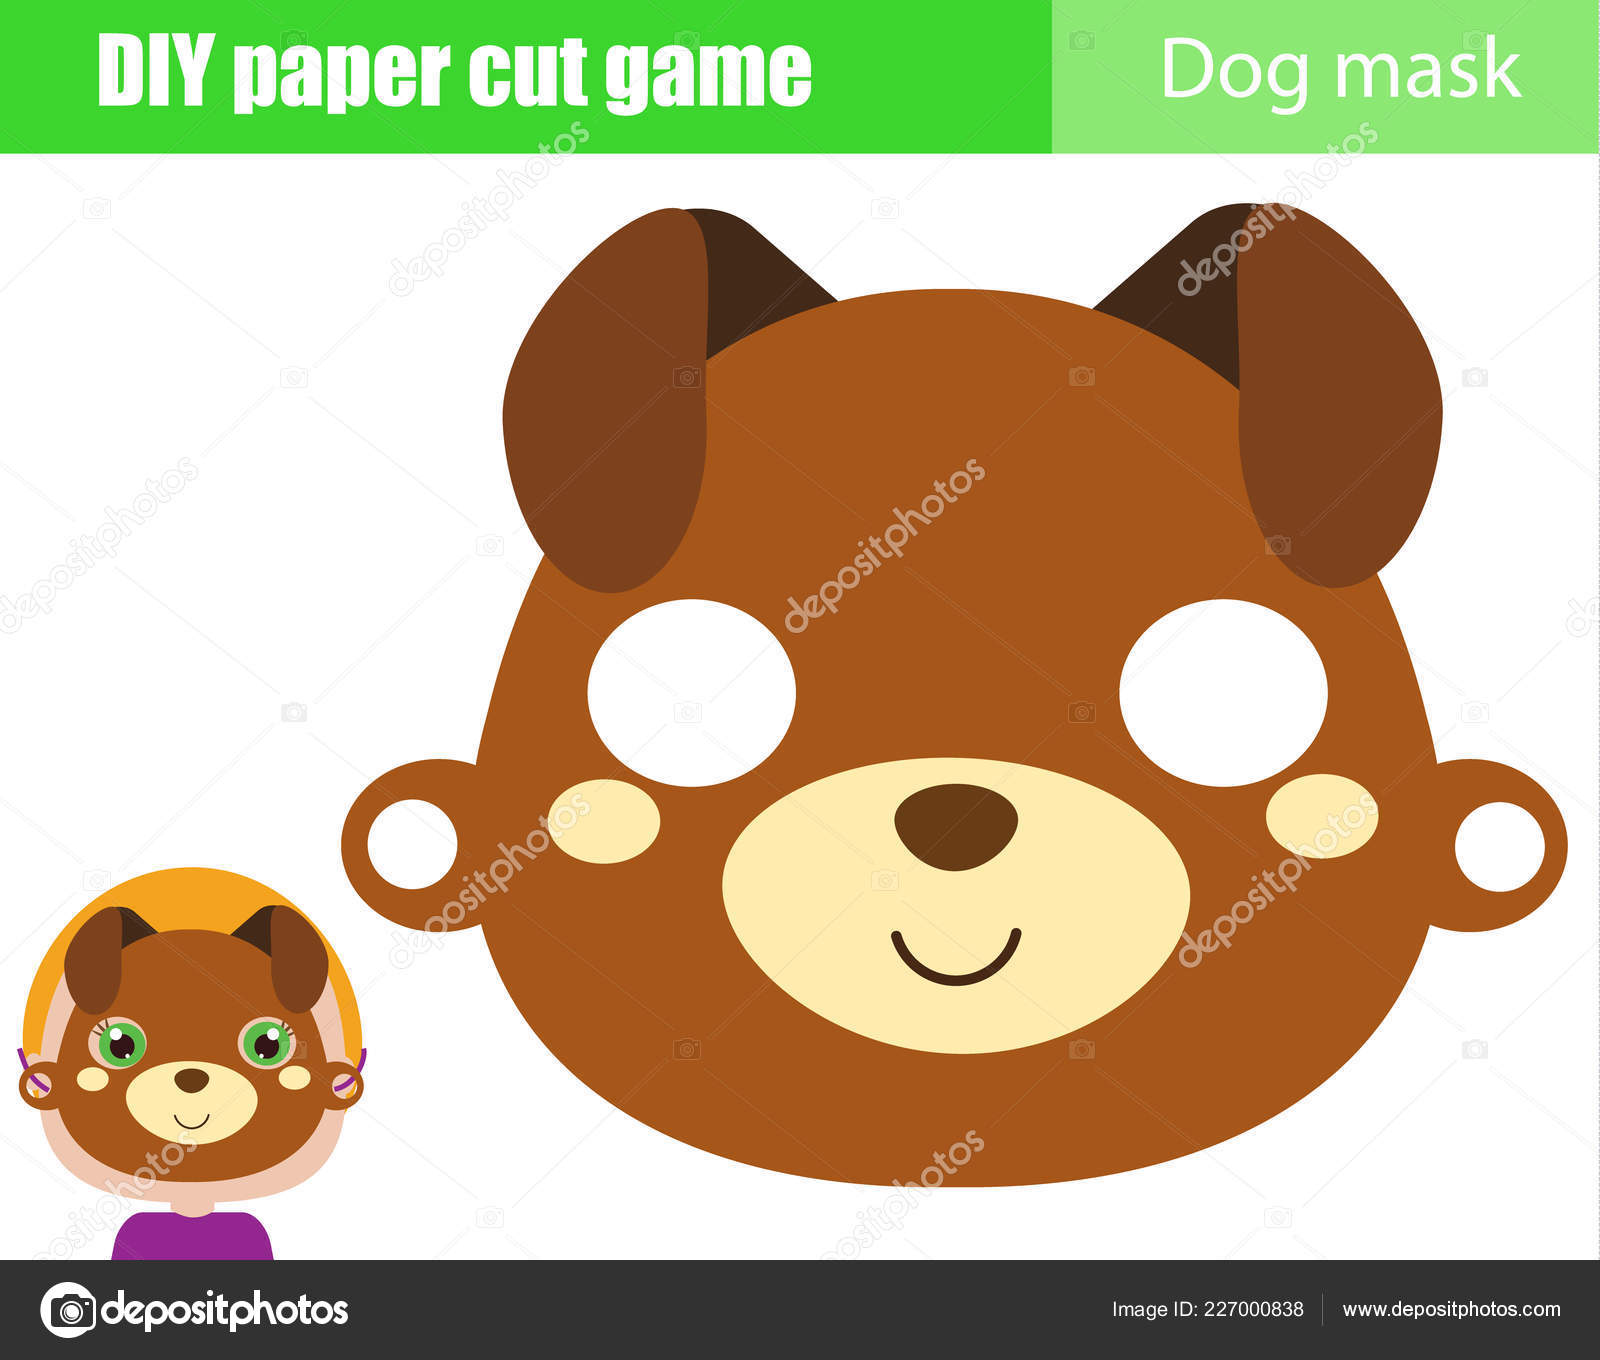 photograph about Dog Mask Printable named Do it yourself Kids Insightful Imaginative Sport Create Animal Social gathering